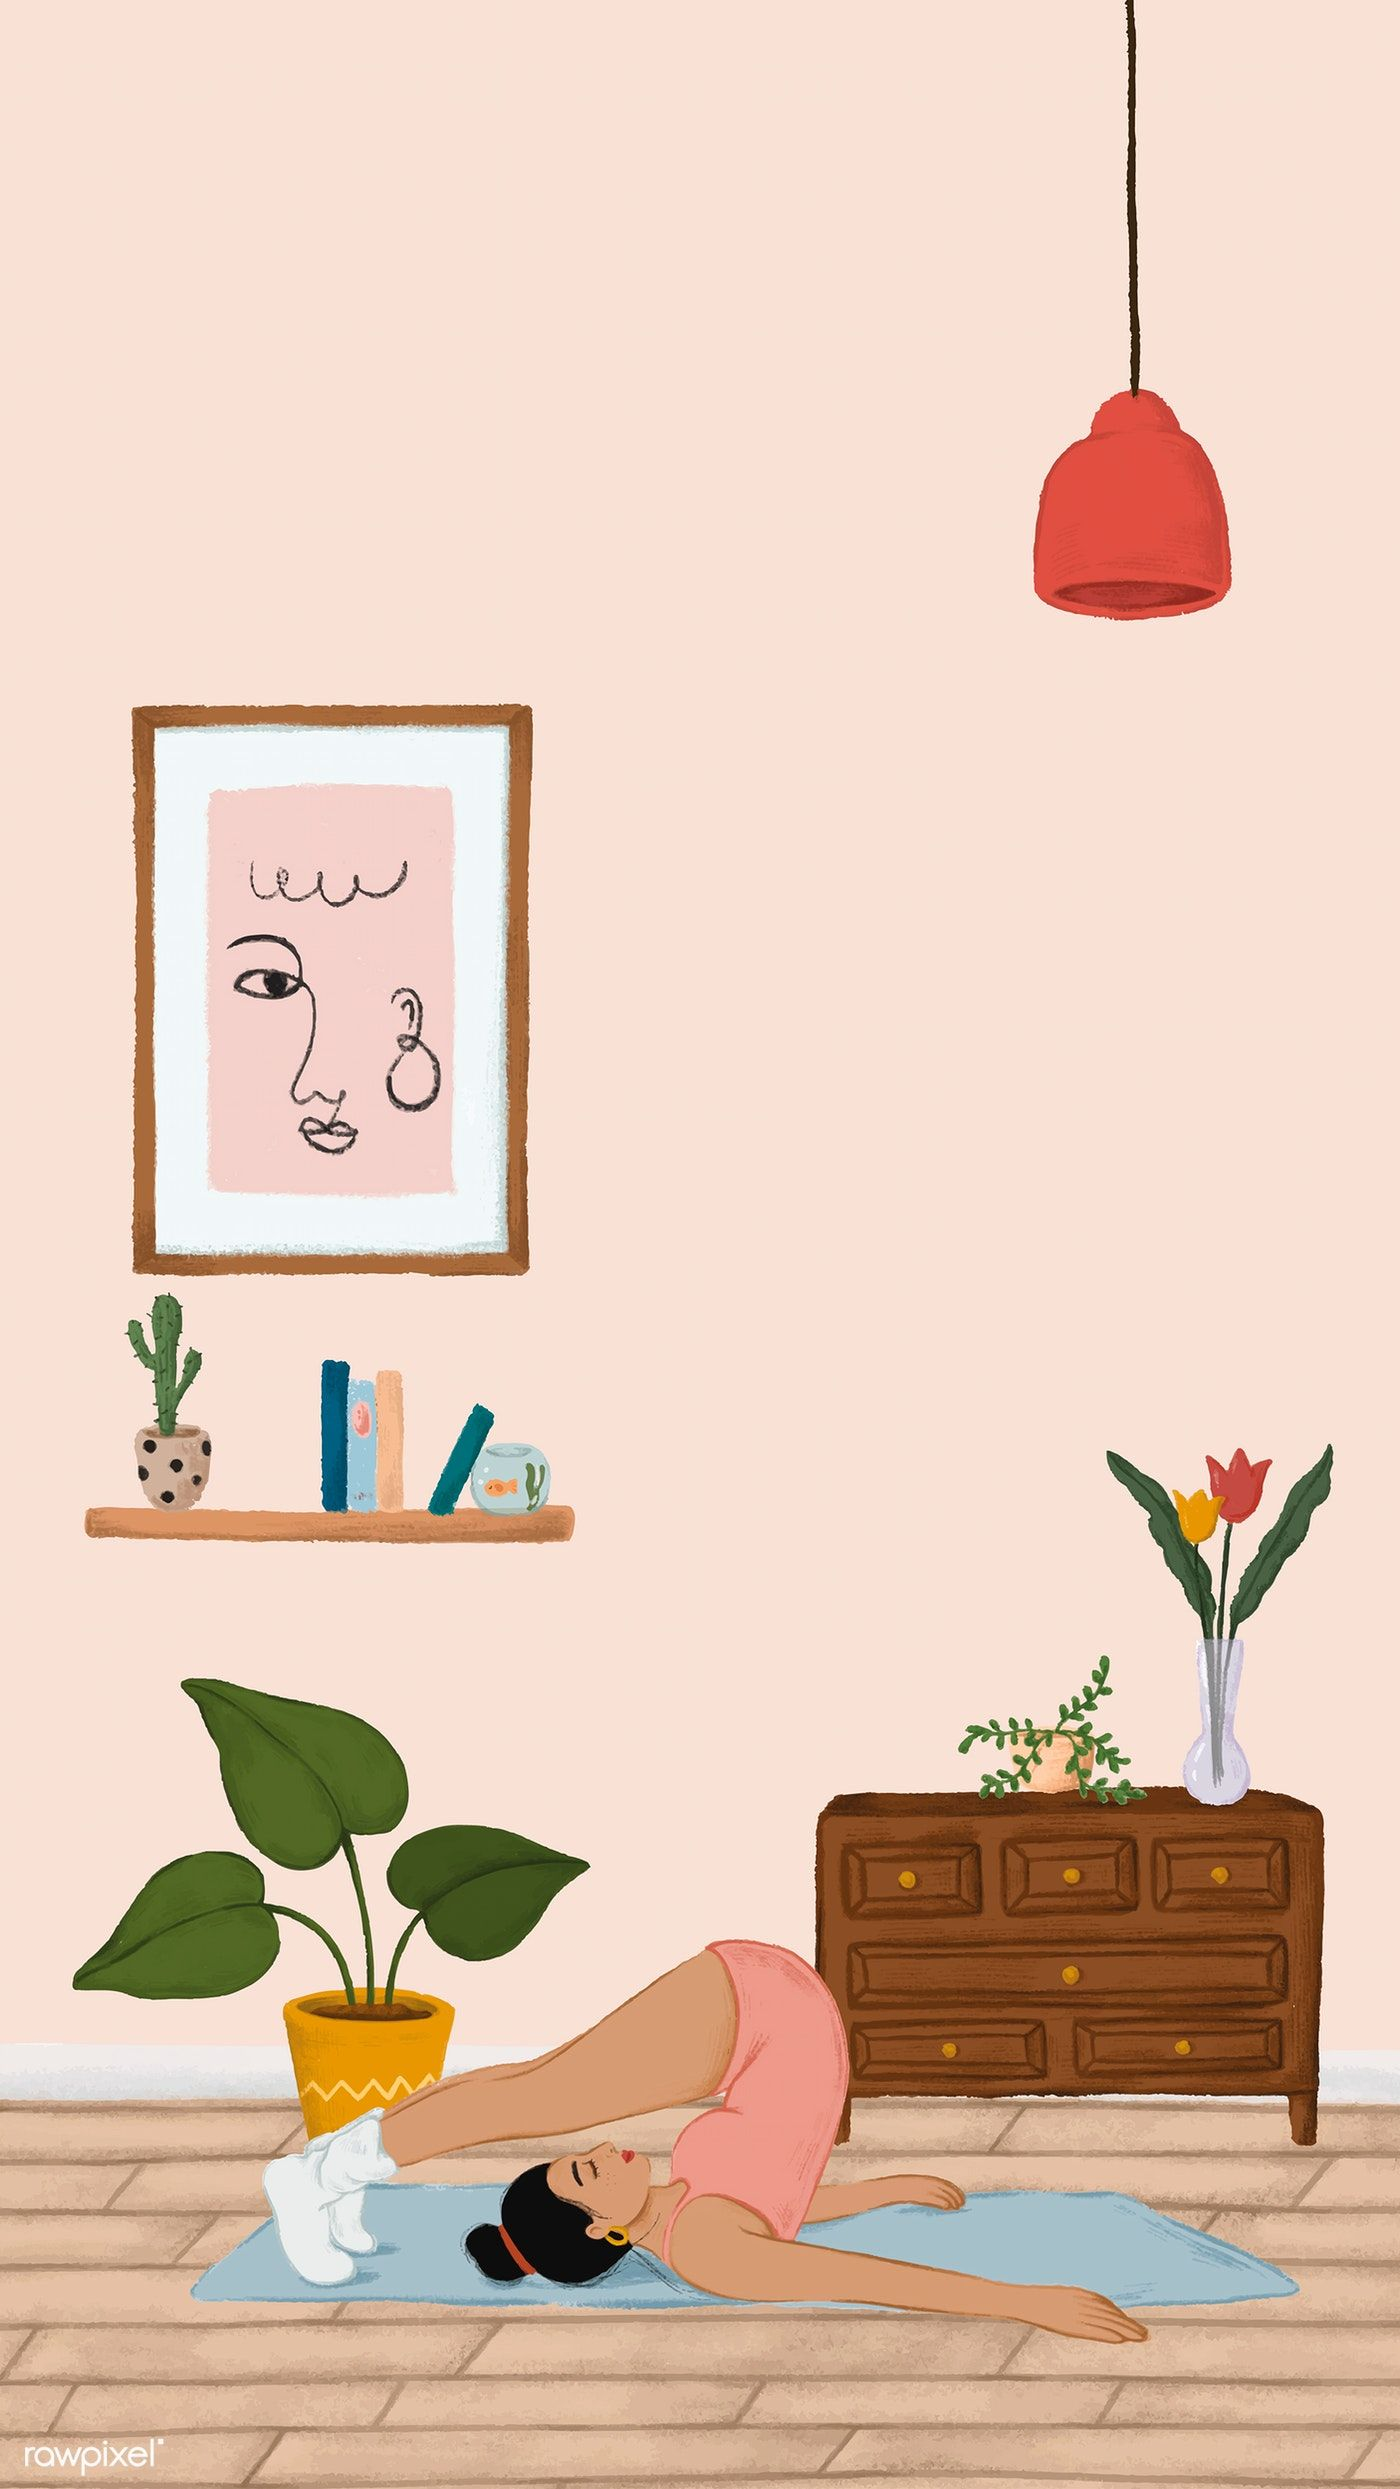 Download premium vector of Girl doing a Halasana yoga pose sketch style mobile phone wallpaper vector by Noon about light cute, story, illustration apartment, vase vector, and interior design 1227417